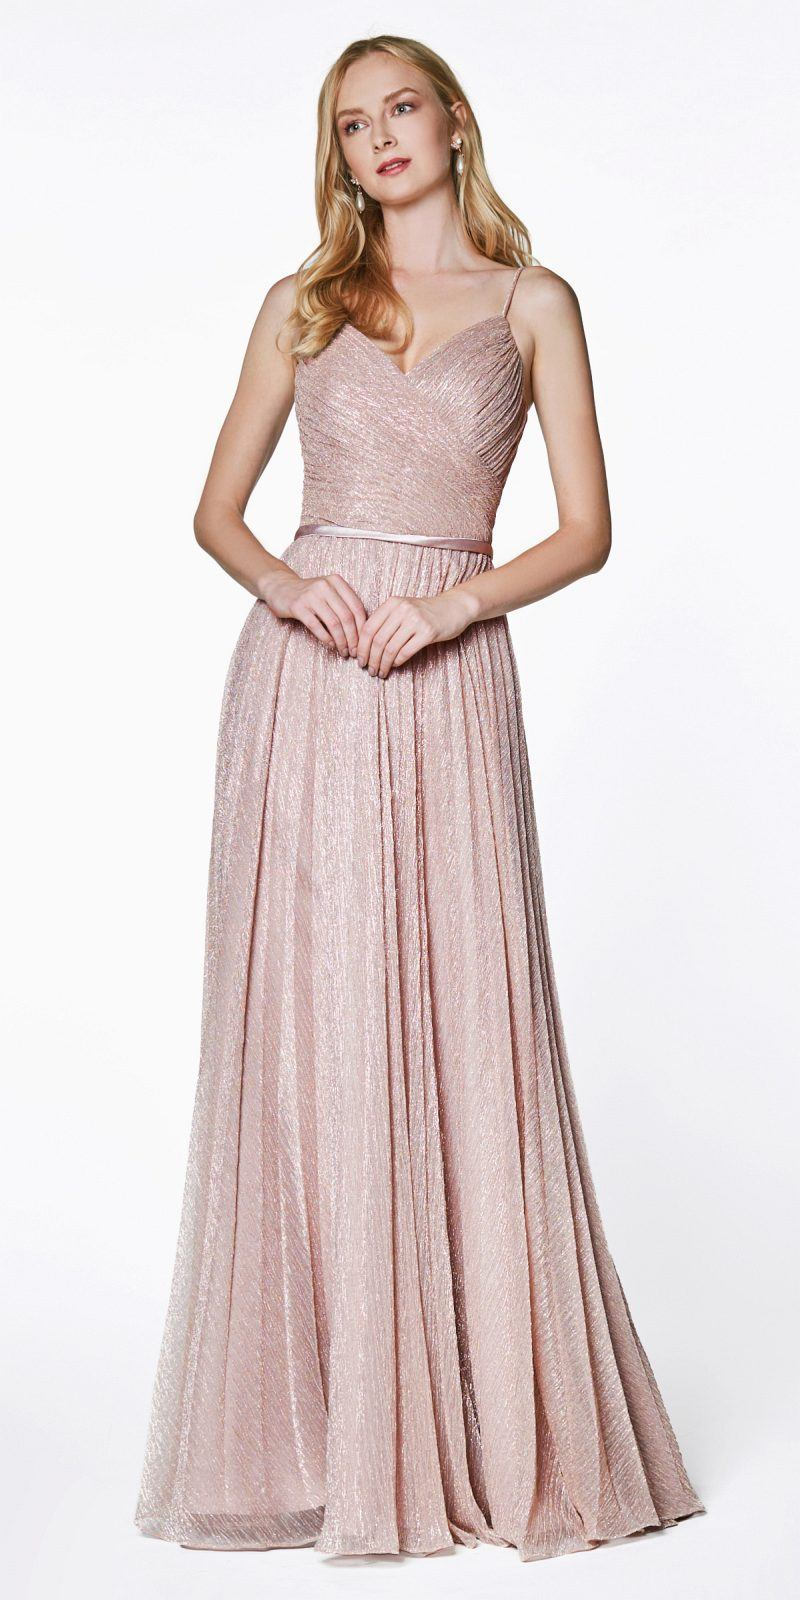 ecb8dcfe1b25 Cinderella Divine CJ269 Metallic Stretch Knit Flowy A-Line Dress Dusty Rose Pleated  Details Satin ...